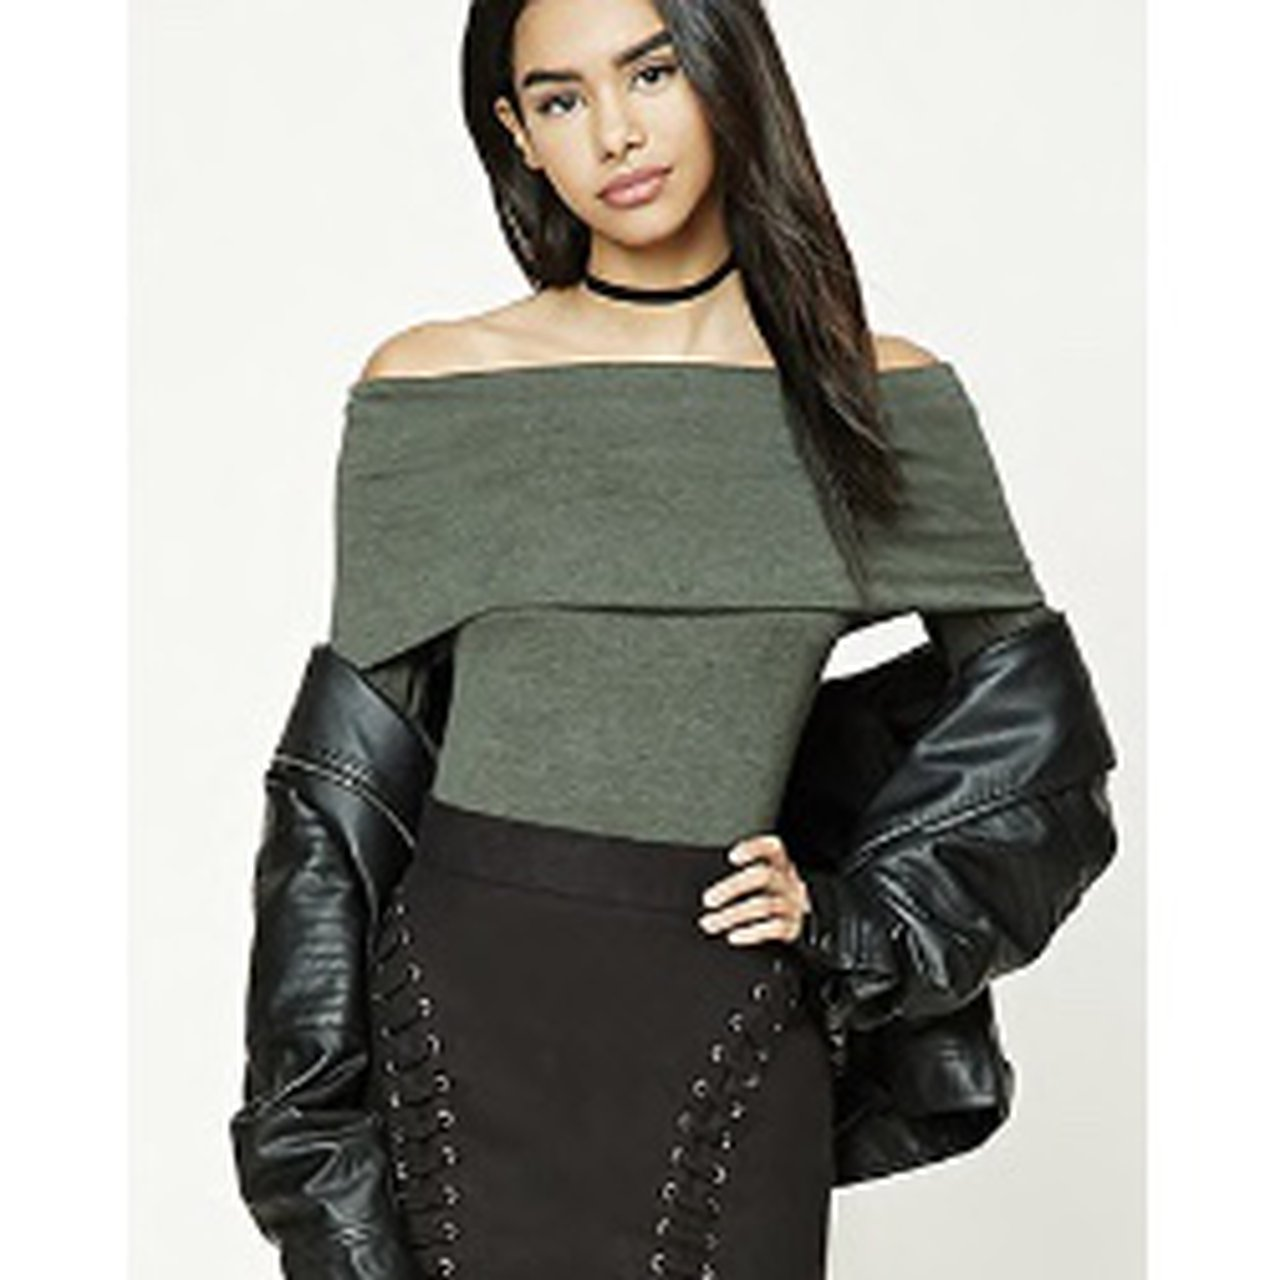 c9864684660721 Olive green off the shoulder top    looks exactly like first - Depop